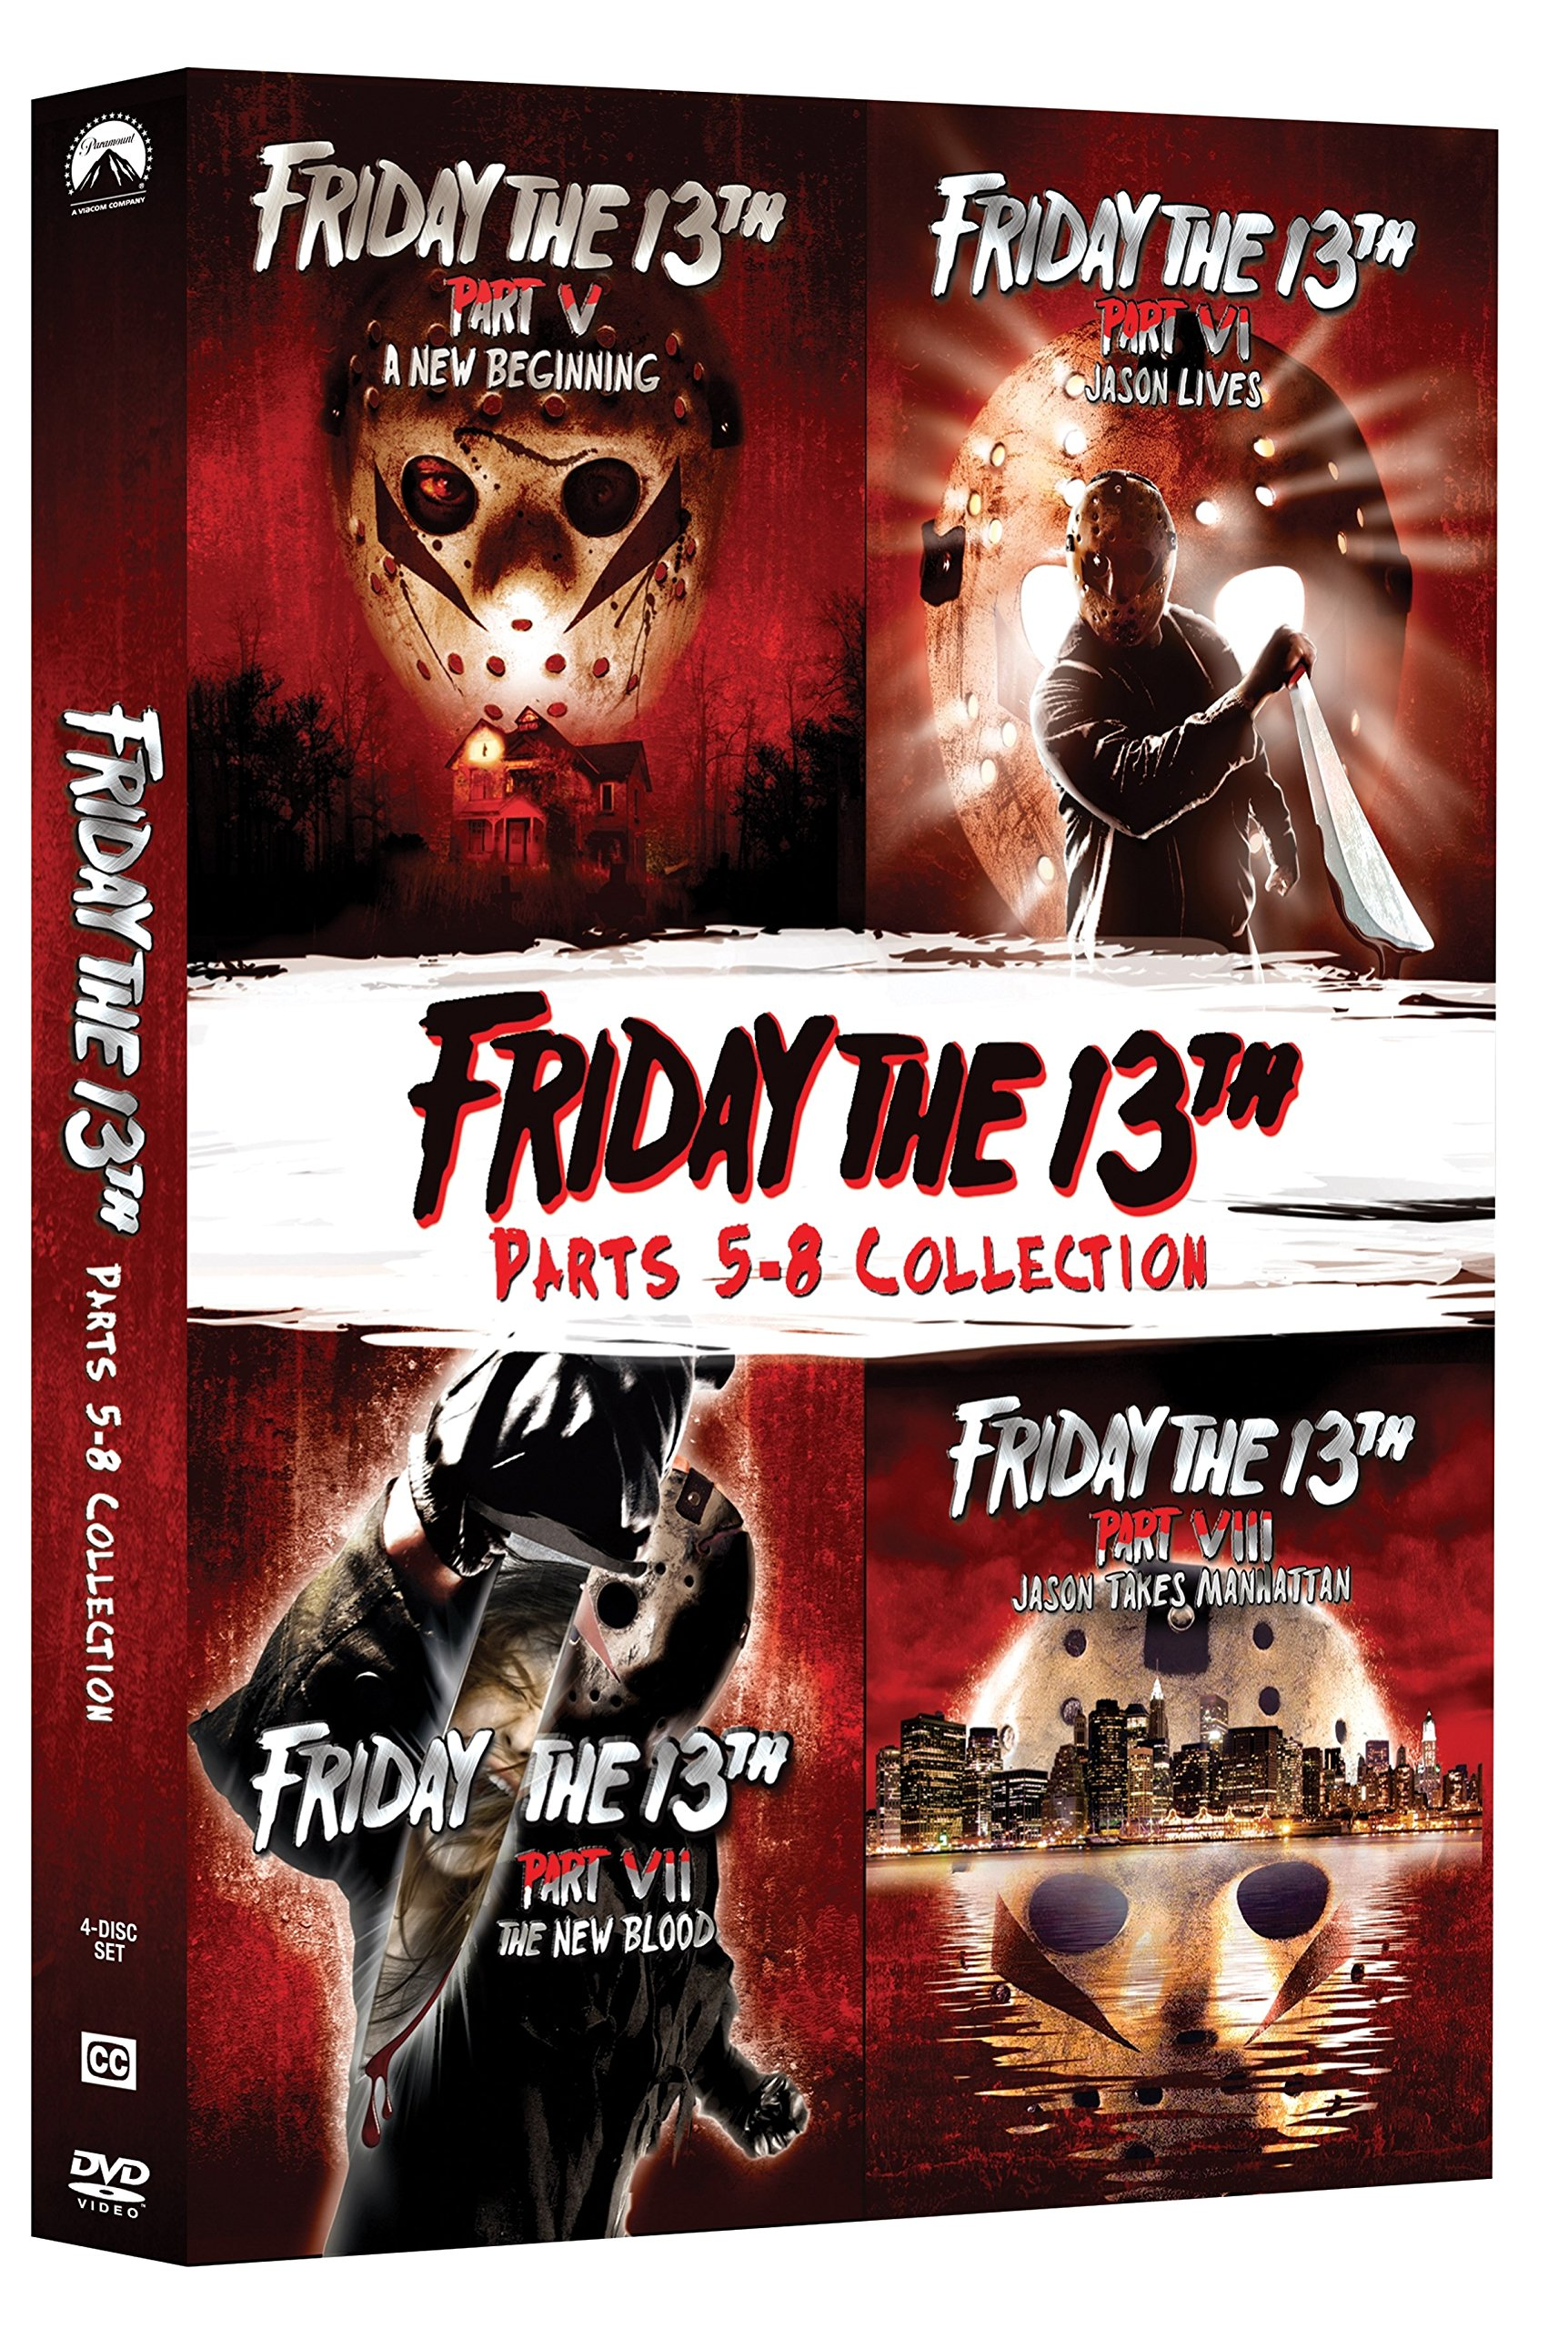 DVD : Friday The 13Th: Deluxe Edition Four Pack (V-VIII) (Deluxe Edition, Widescreen, Amaray Case, 2 Pack, 2 Disc)